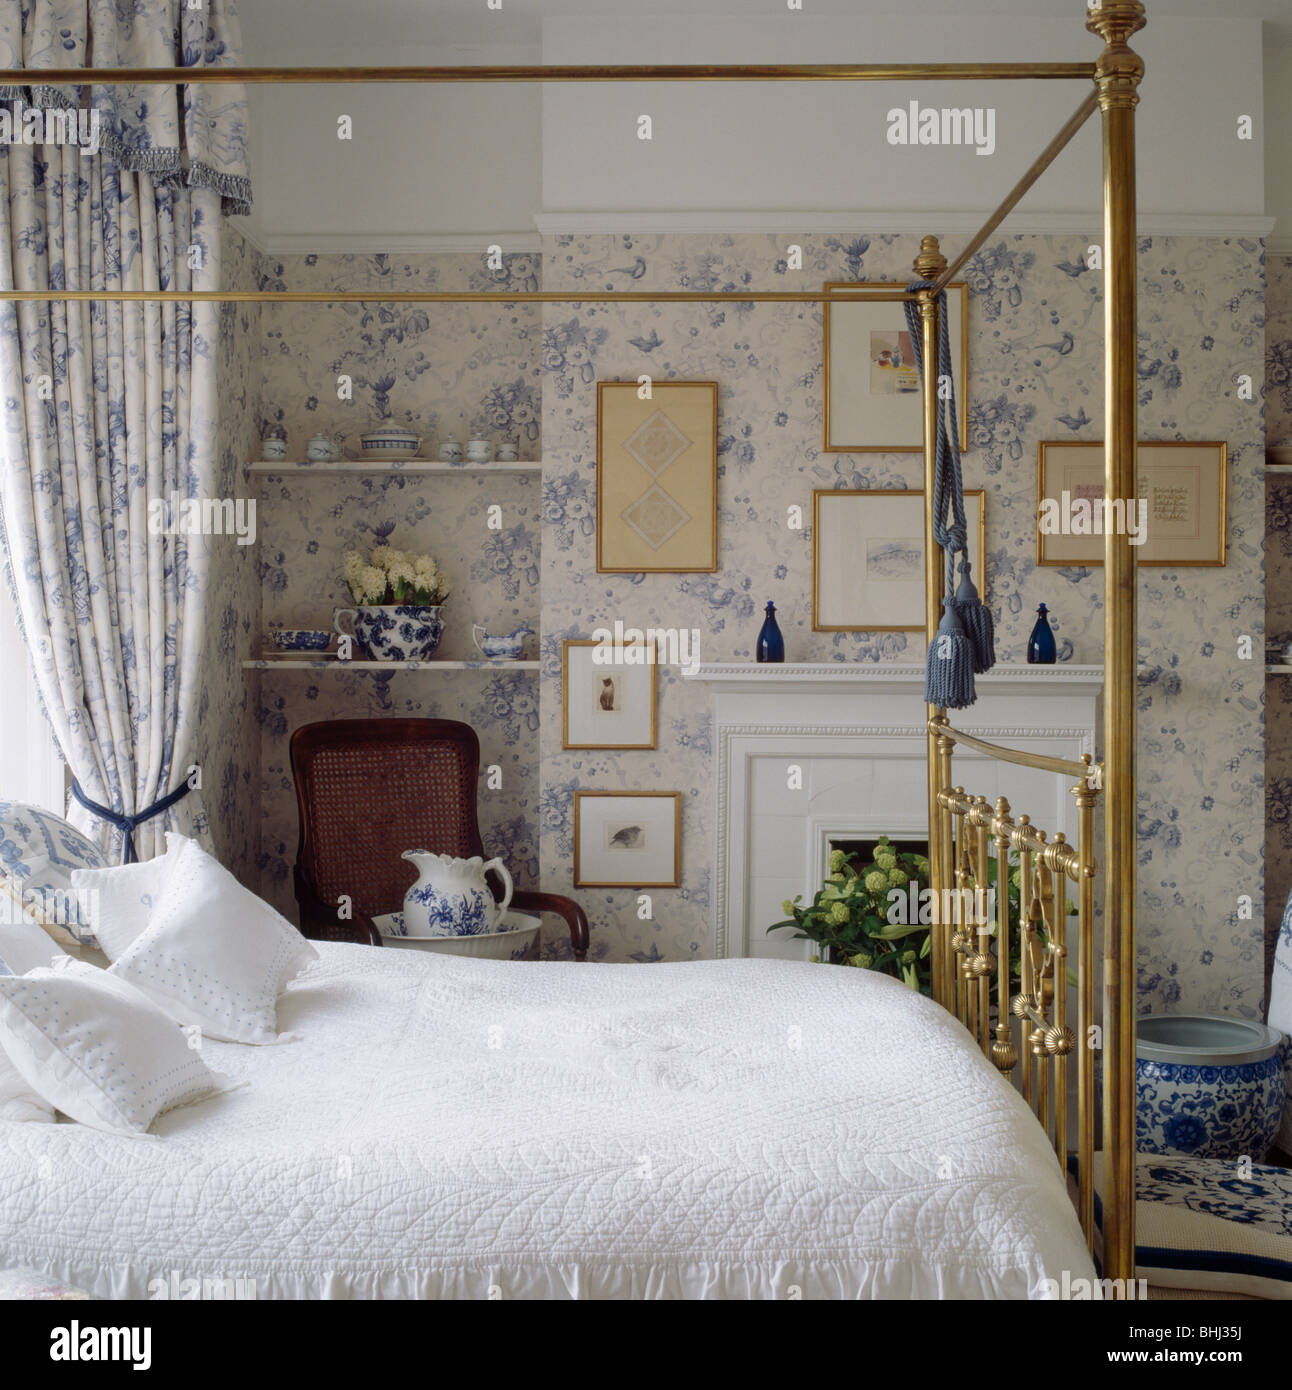 White Quilt And Cushions On Brass Bed In Traditional Bedroom With